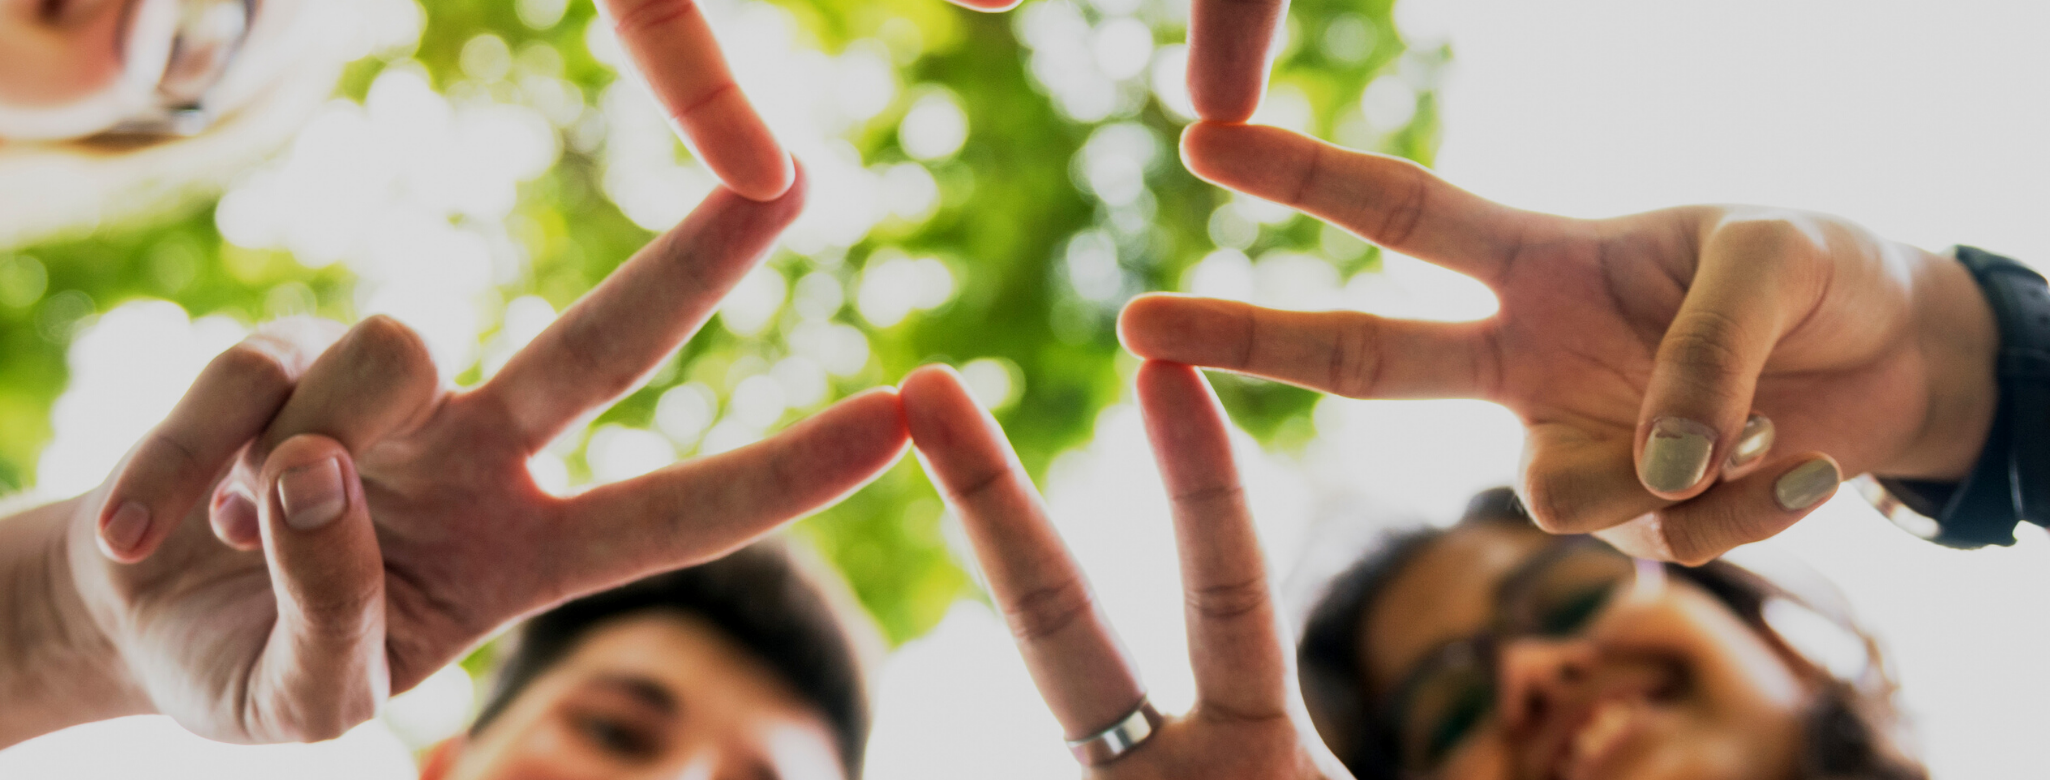 teens making peace signs with their fingers